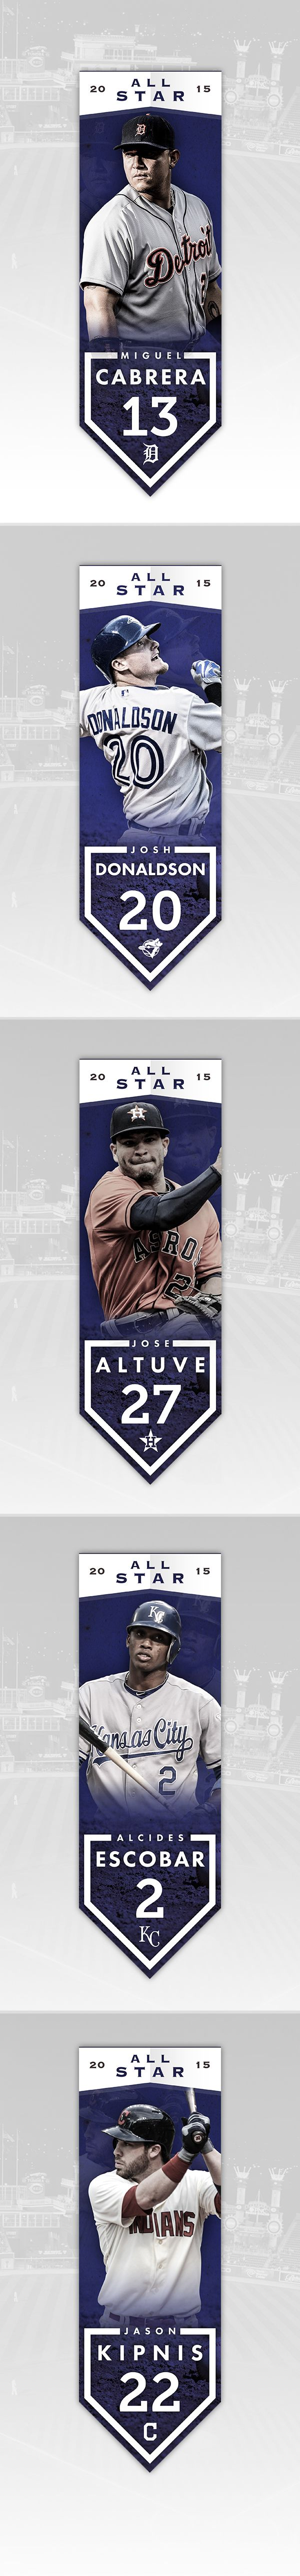 MLB All Star Banners on Behance